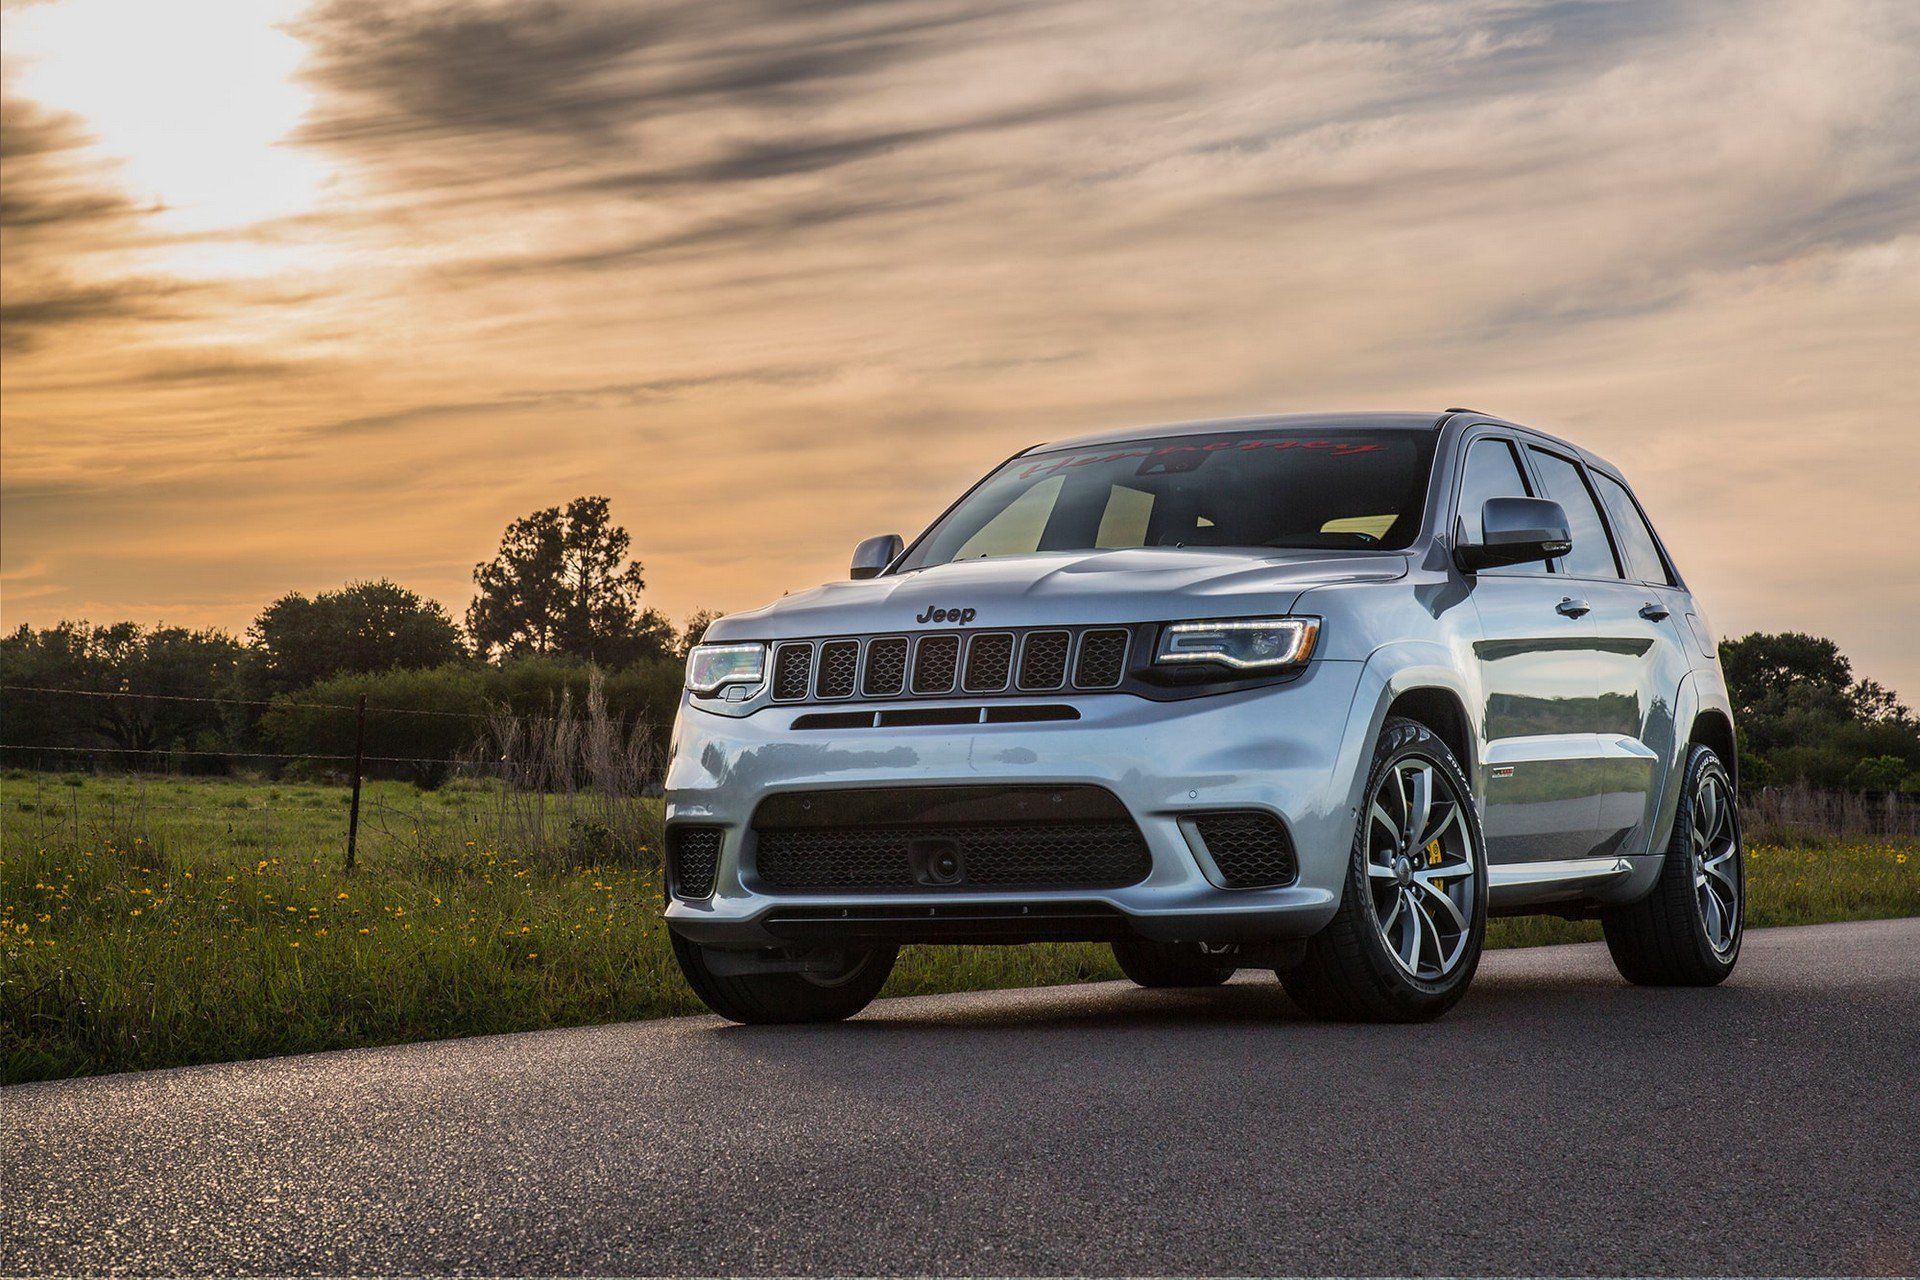 Hennessey S 1200 Hp Jeep Grand Cherokee Trackhawk Claims To Be The Fastest Accelerating Suv In The World Jeep Grand Dream Cars Range Rovers Jeep Grand Cherokee